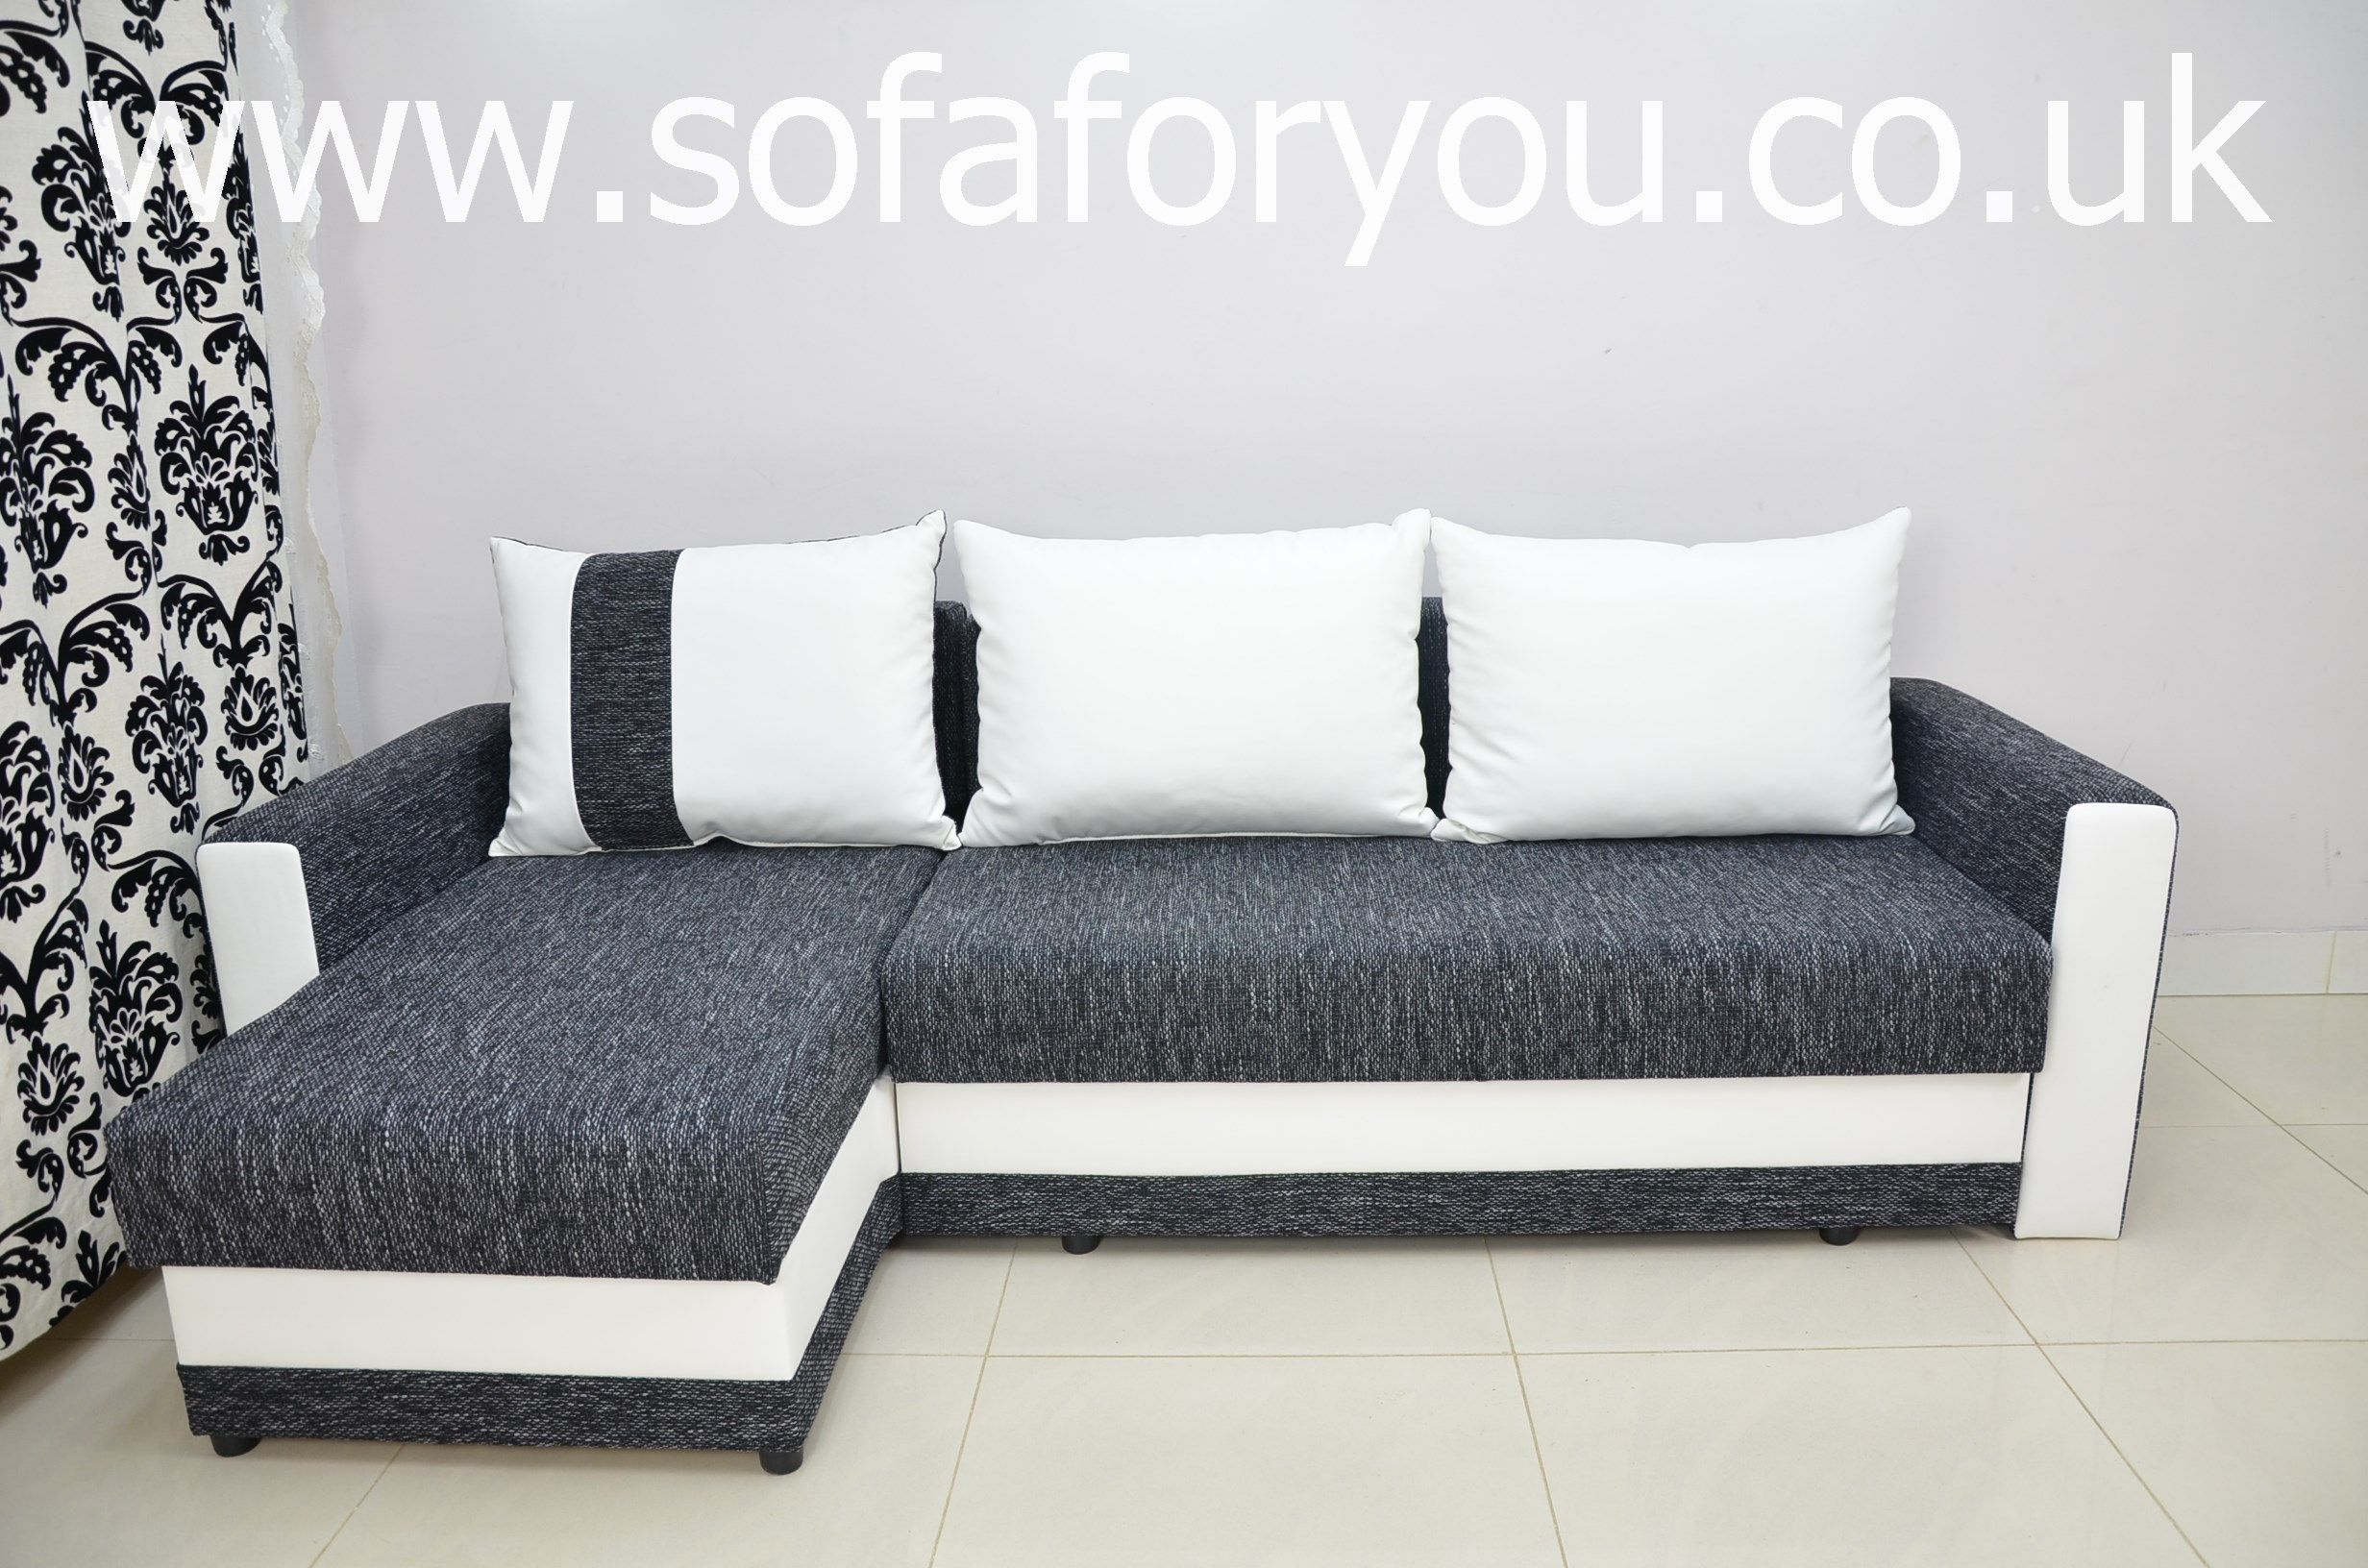 Great Sofa Bed Kent Double Bed And Two Bedding Storages Corner Sofa Bed Sofa Sofa Bed